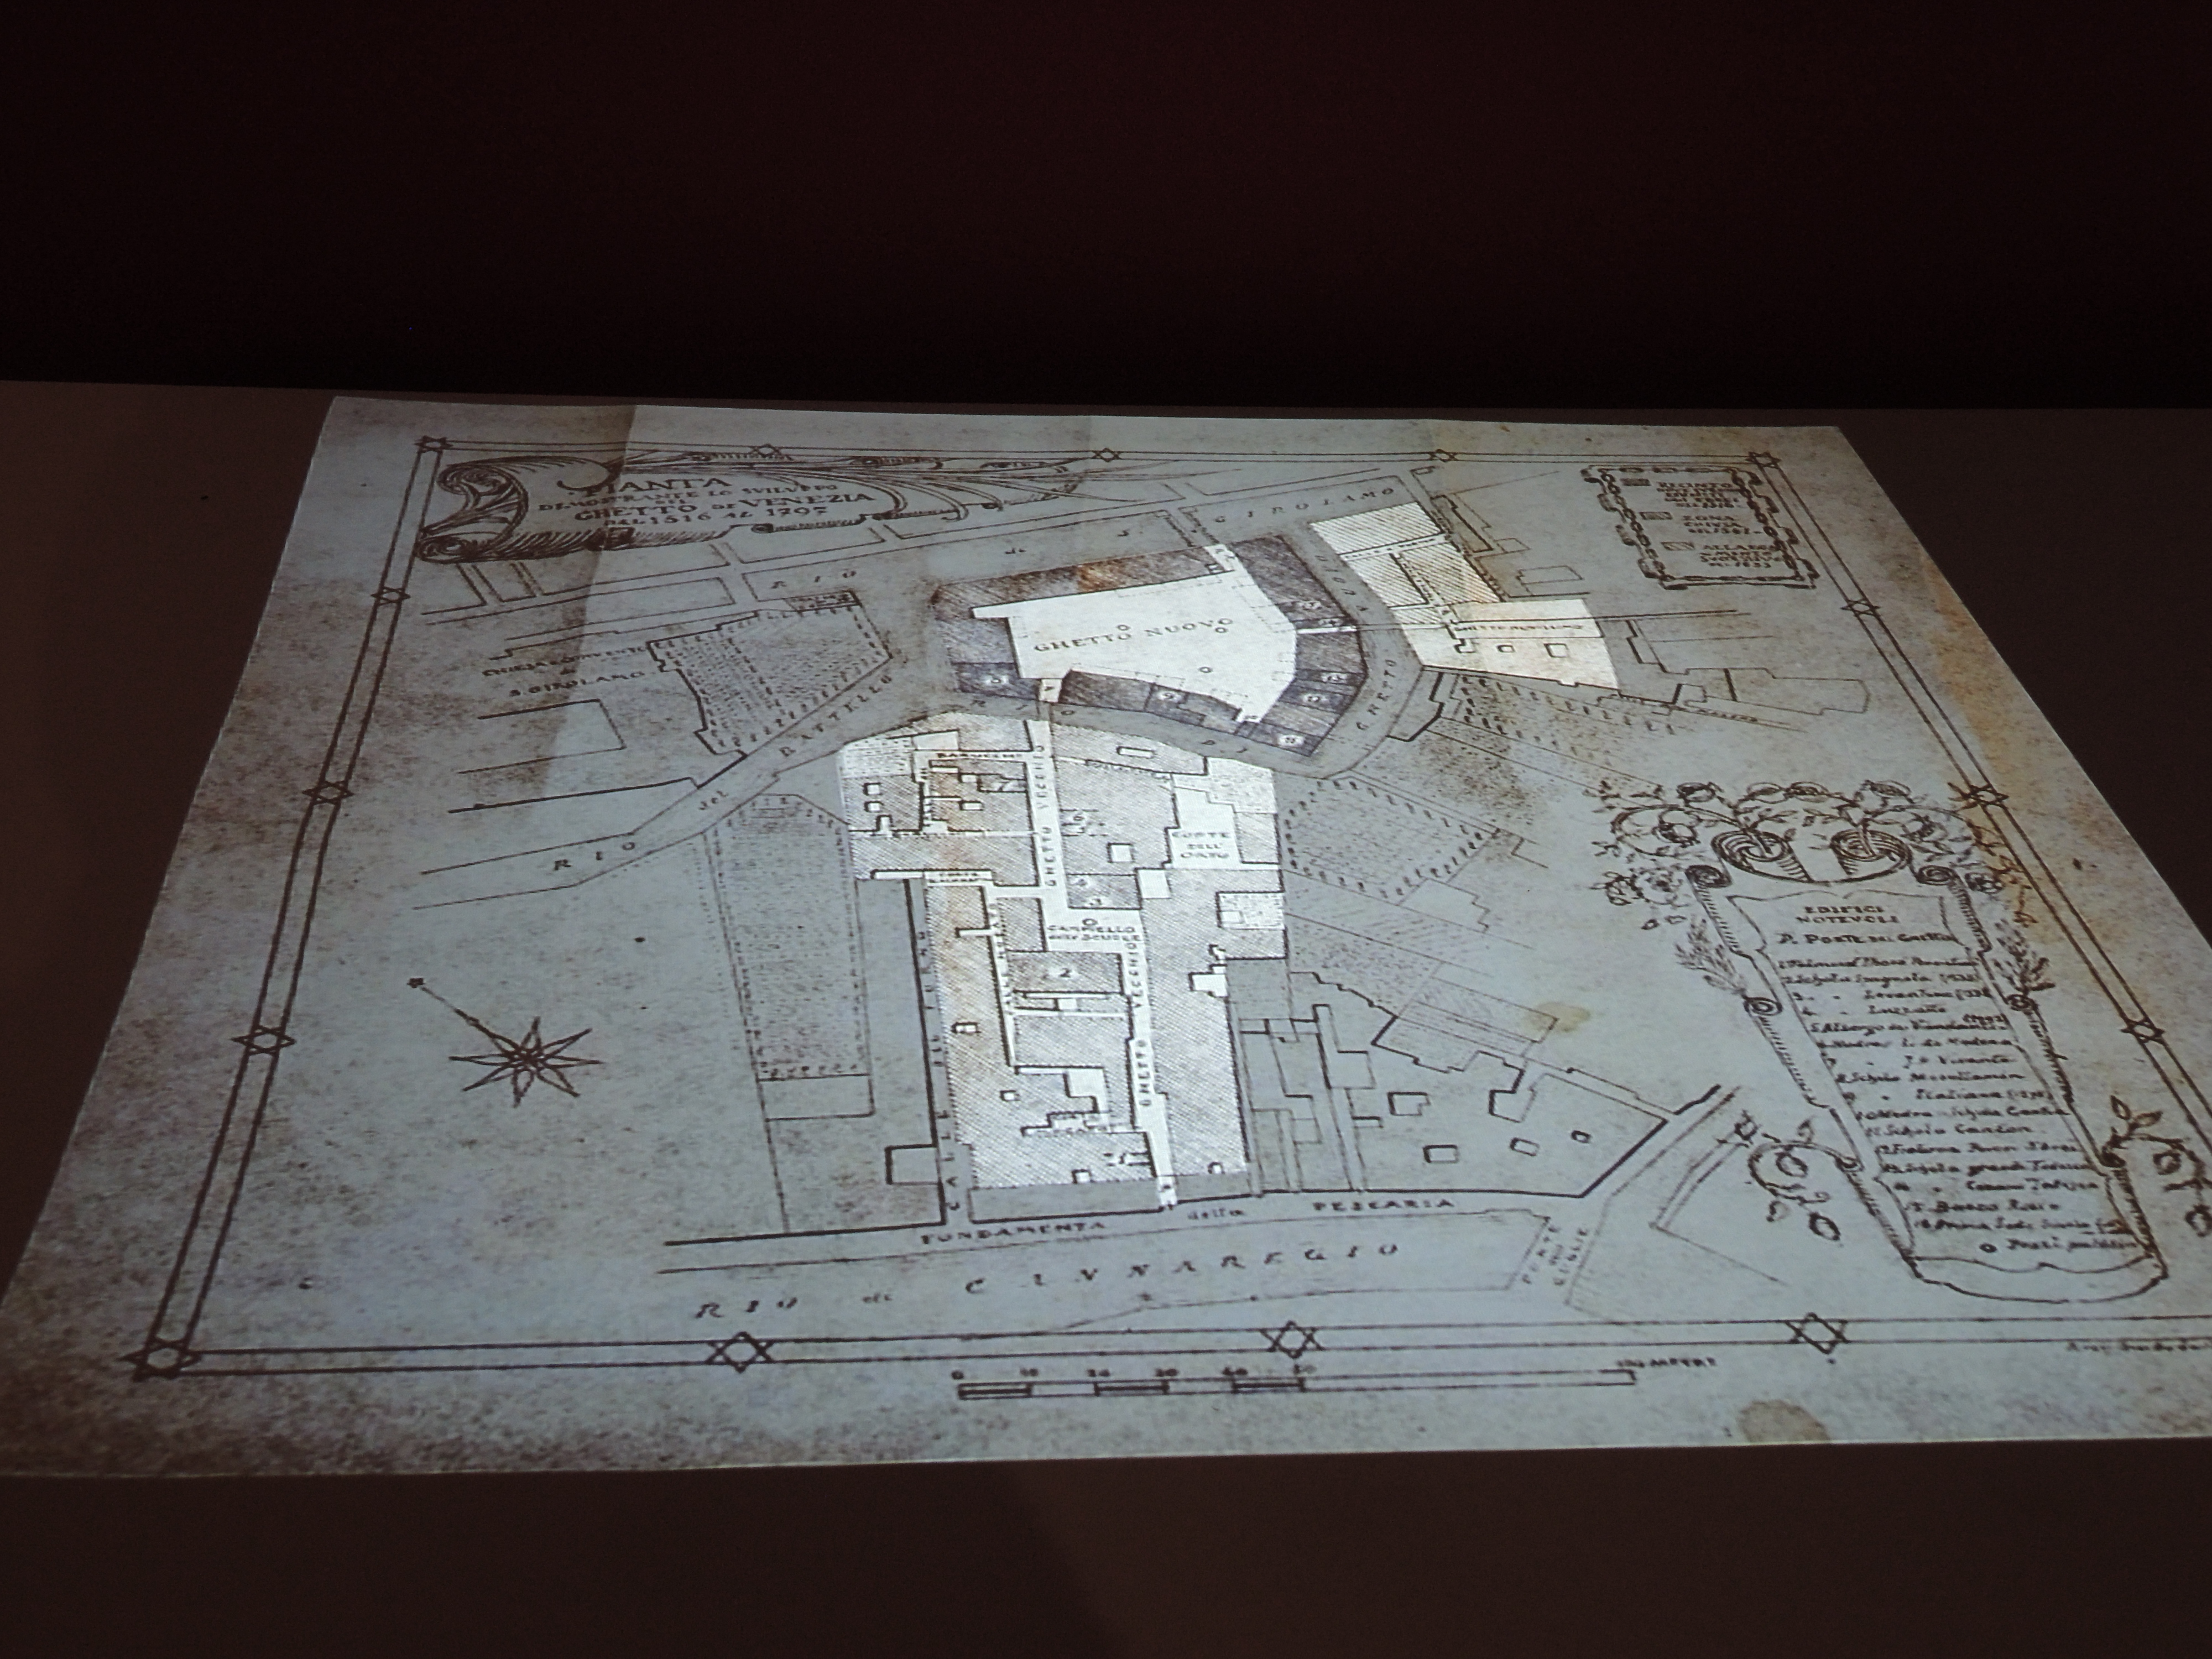 A panel showing the extension of the three Ghettos in Venice